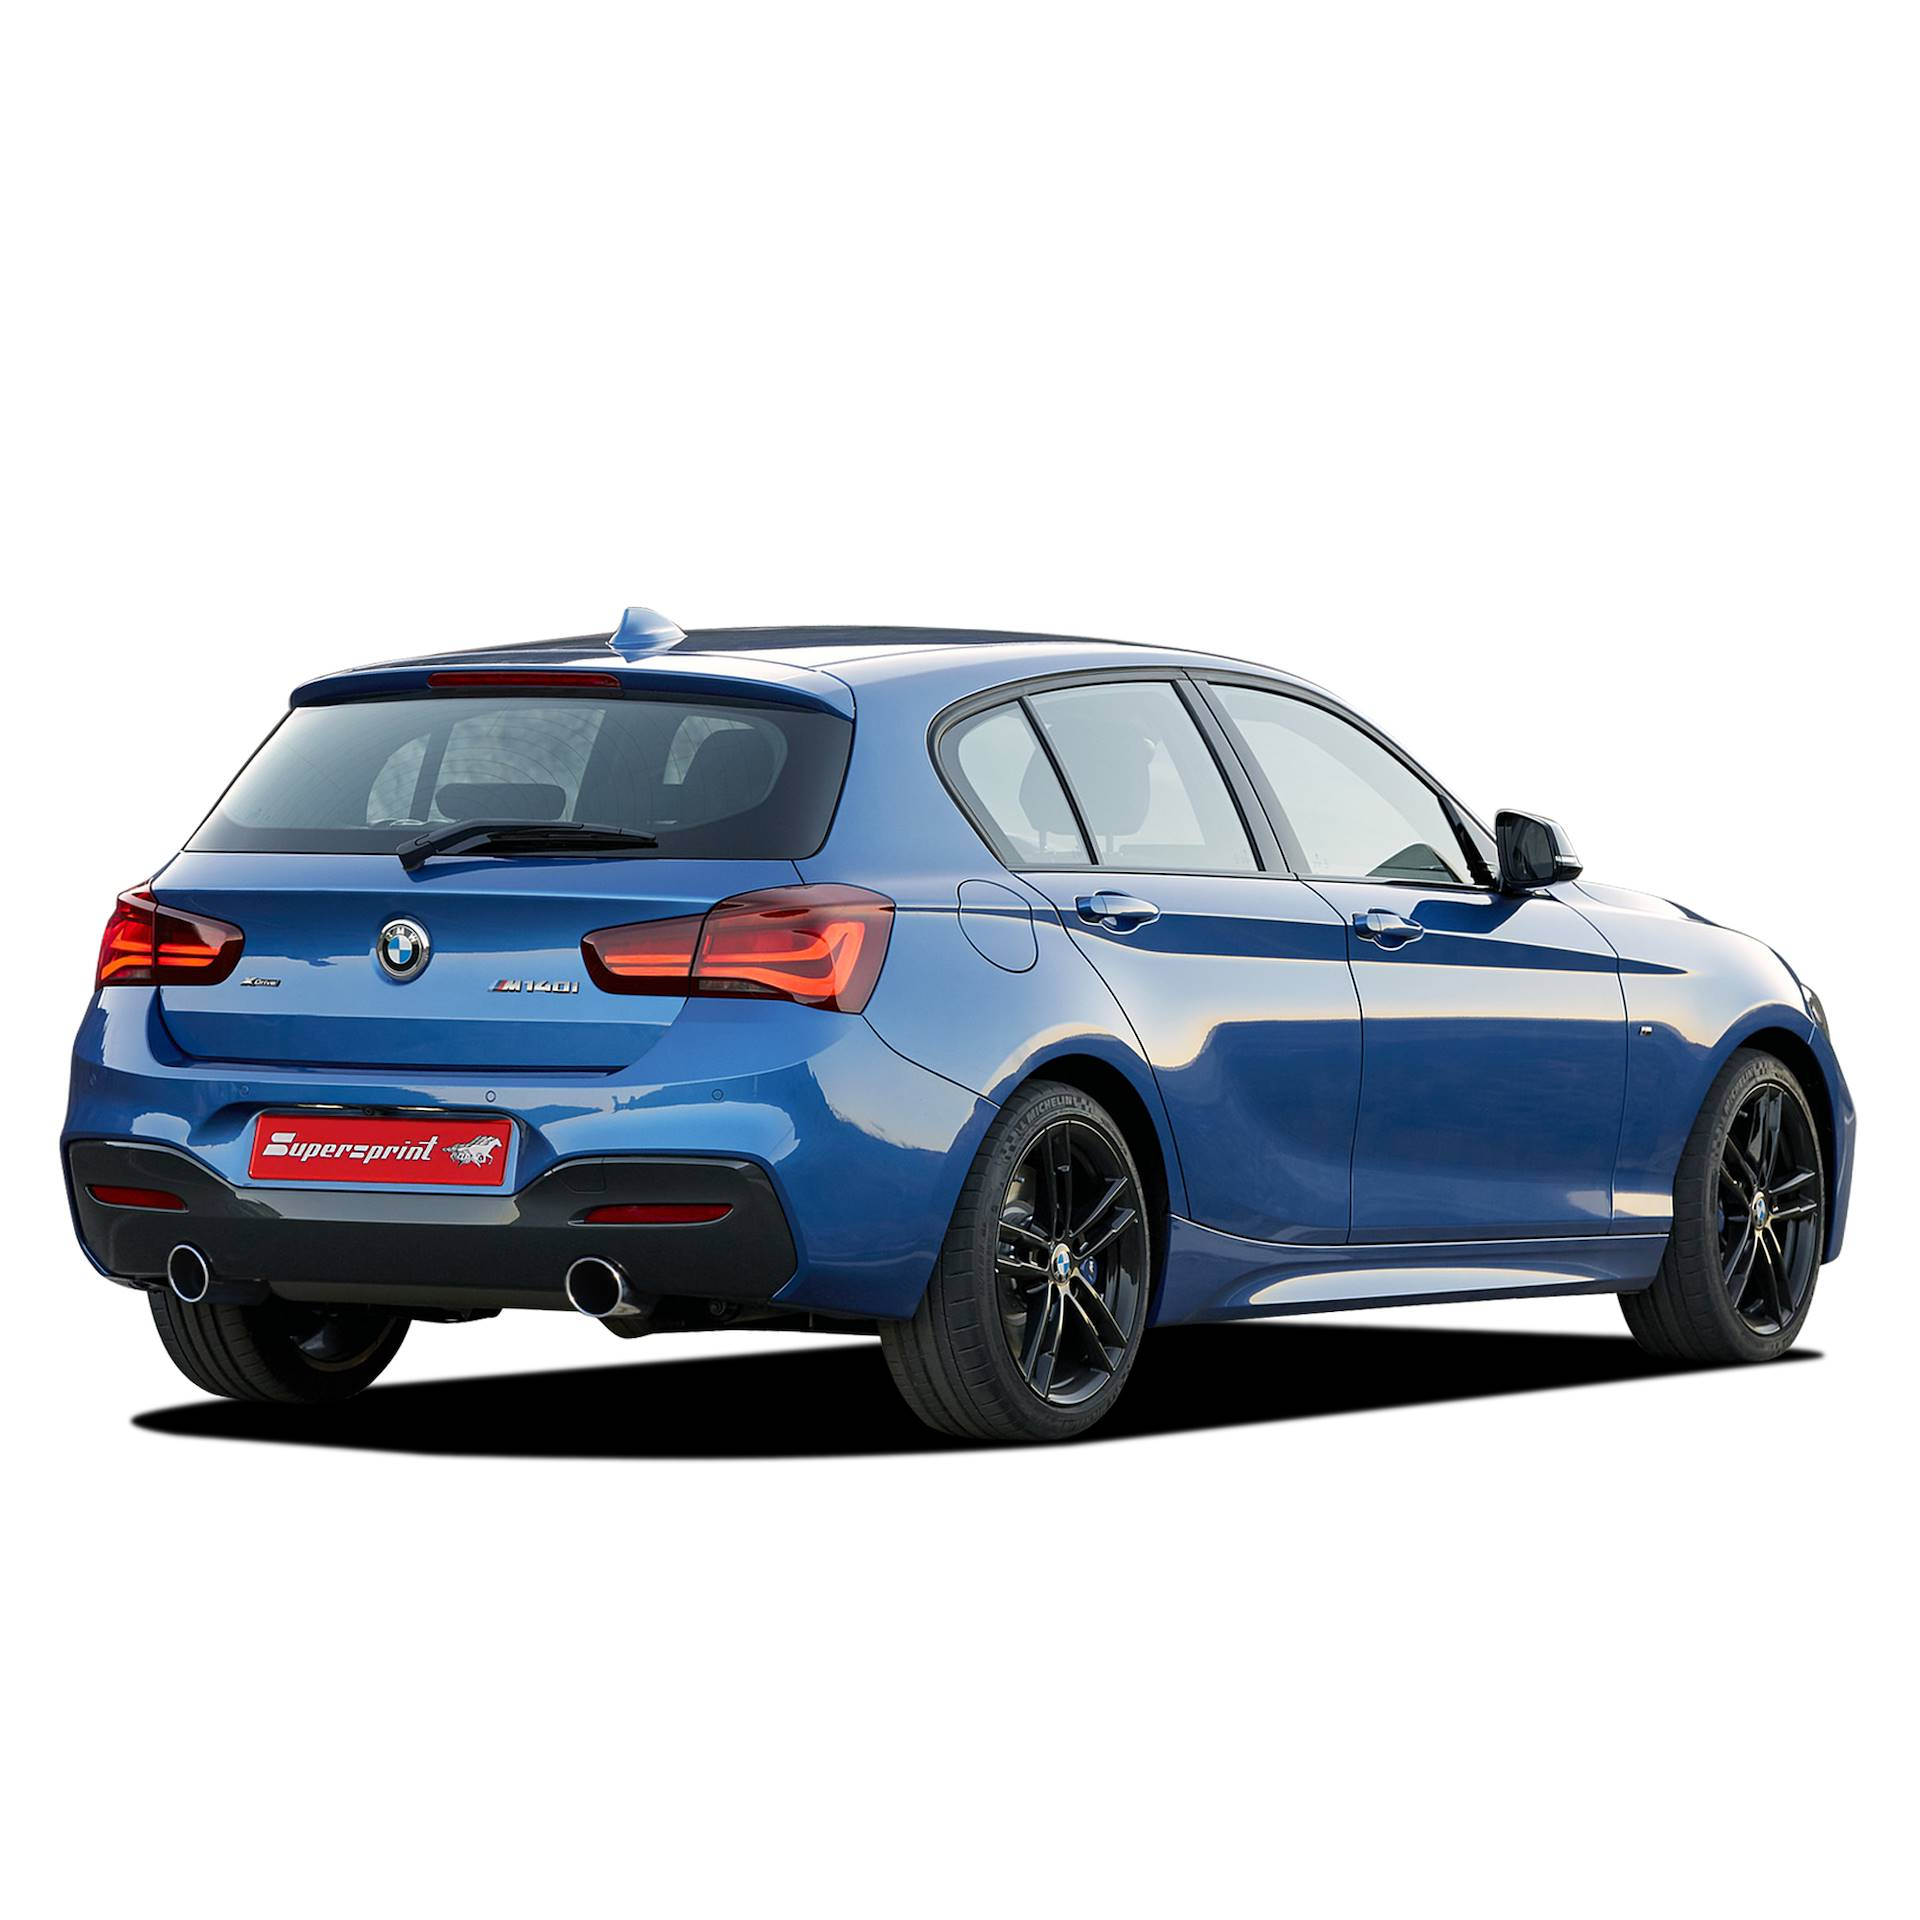 bmw f20 f21 lci m140i 340 hp 2016 bmw exhaust systems. Black Bedroom Furniture Sets. Home Design Ideas